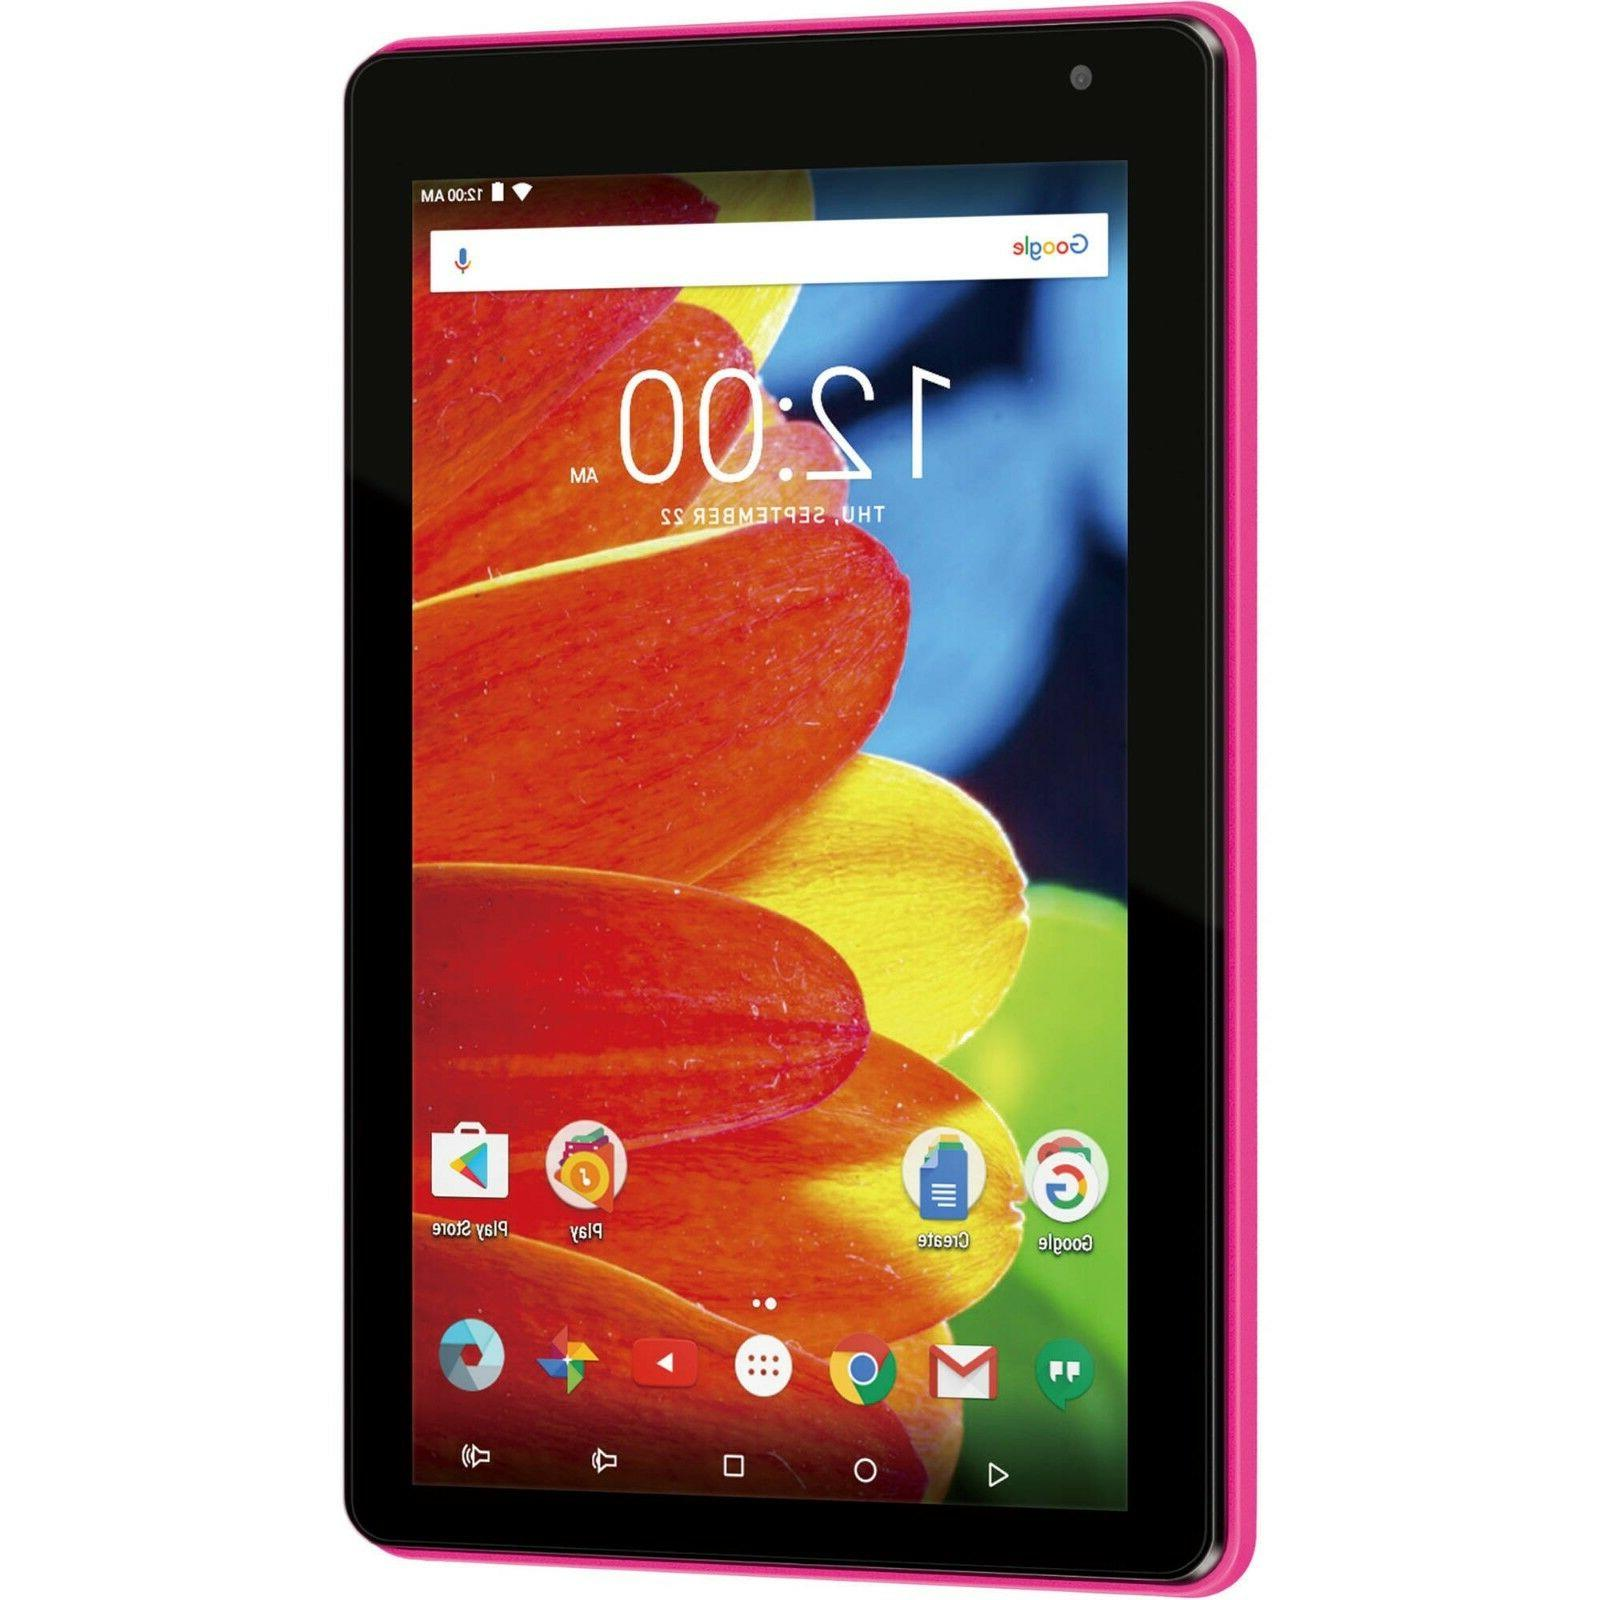 Tablet RCA inch 16GB 1Gb System Memory WiFi Android